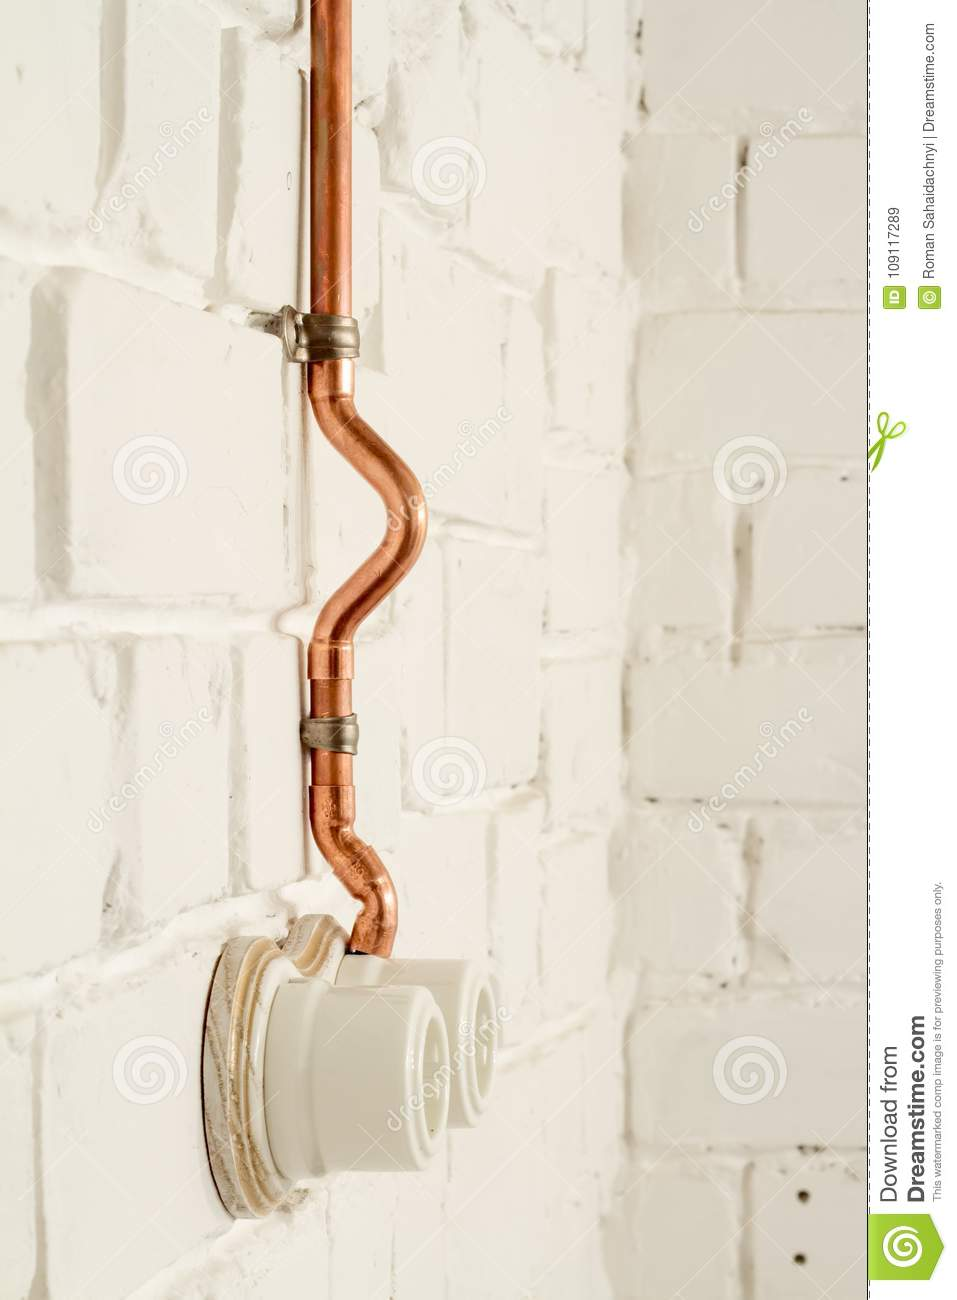 A Vintage Outlet And Electrical Wiring In Copper Tube Stock Image Wall